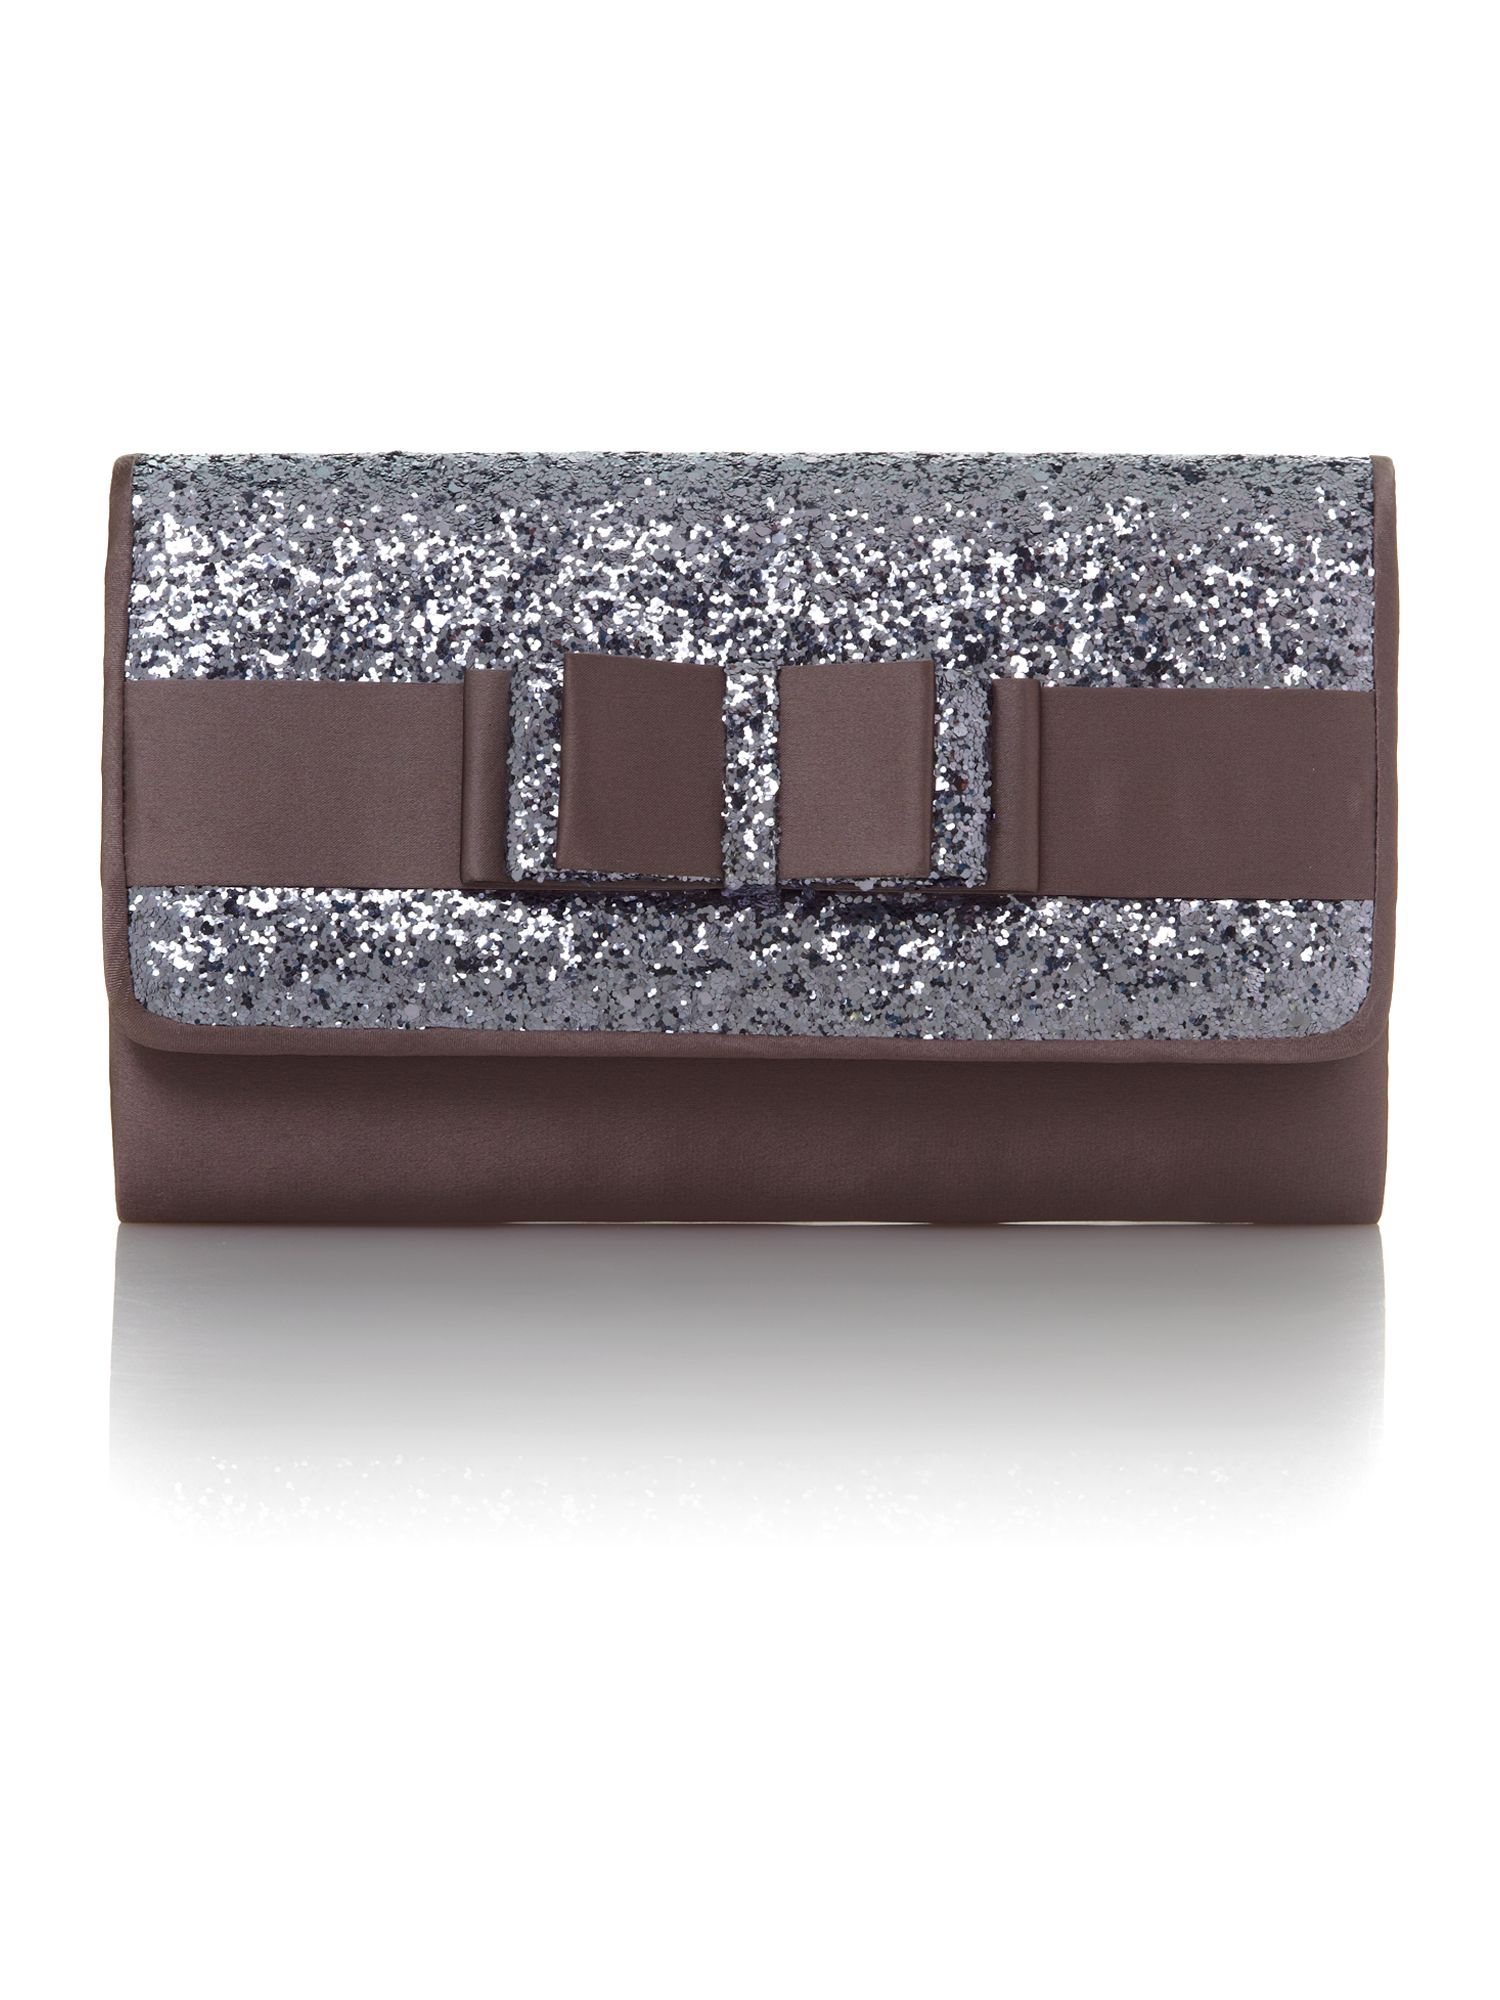 Bow flap clutch